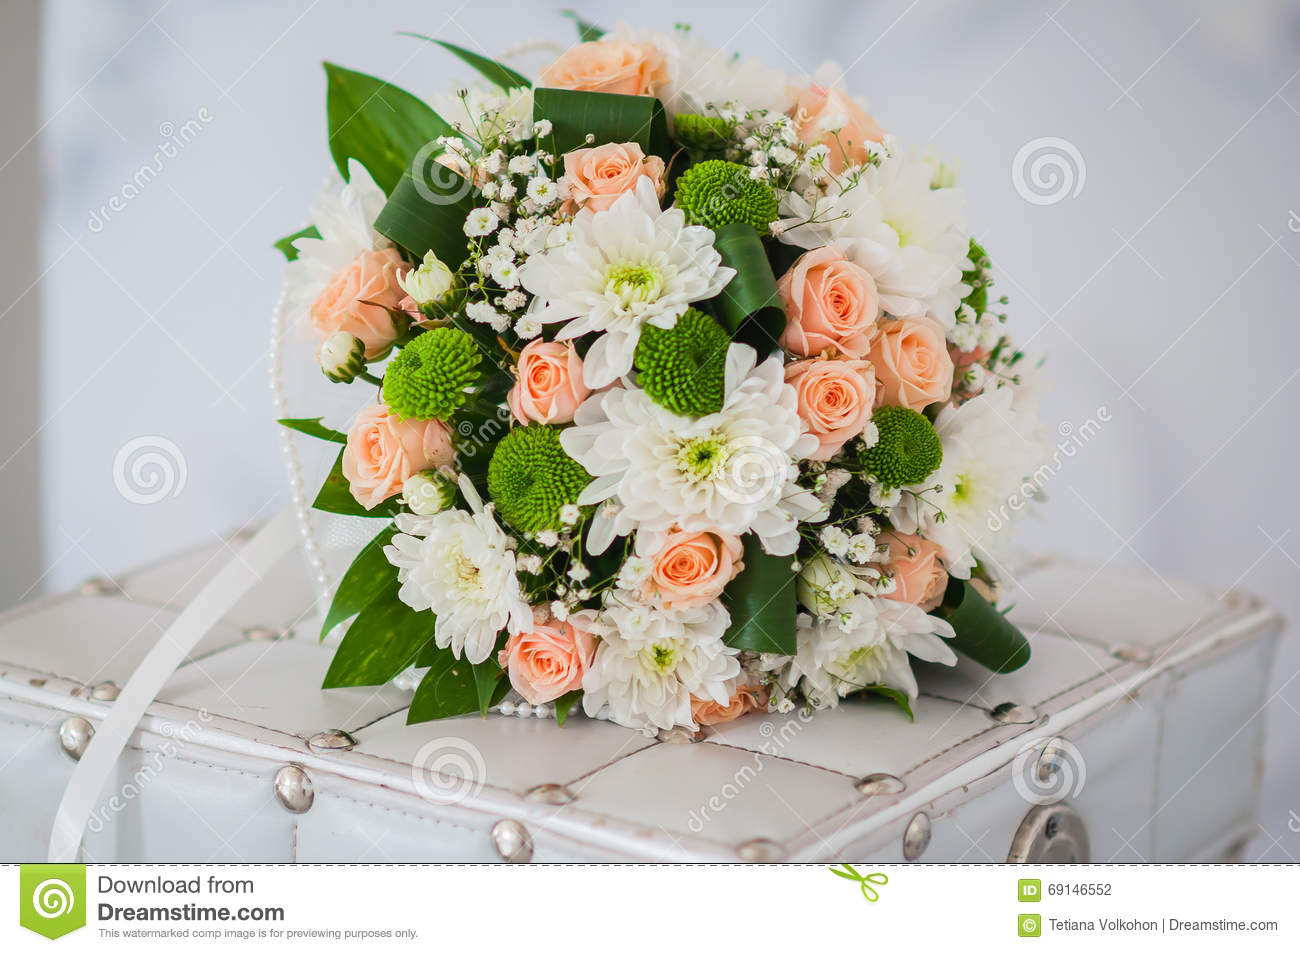 white and pink wedding bouquet with chrysanthemum stock photo, Beautiful flower